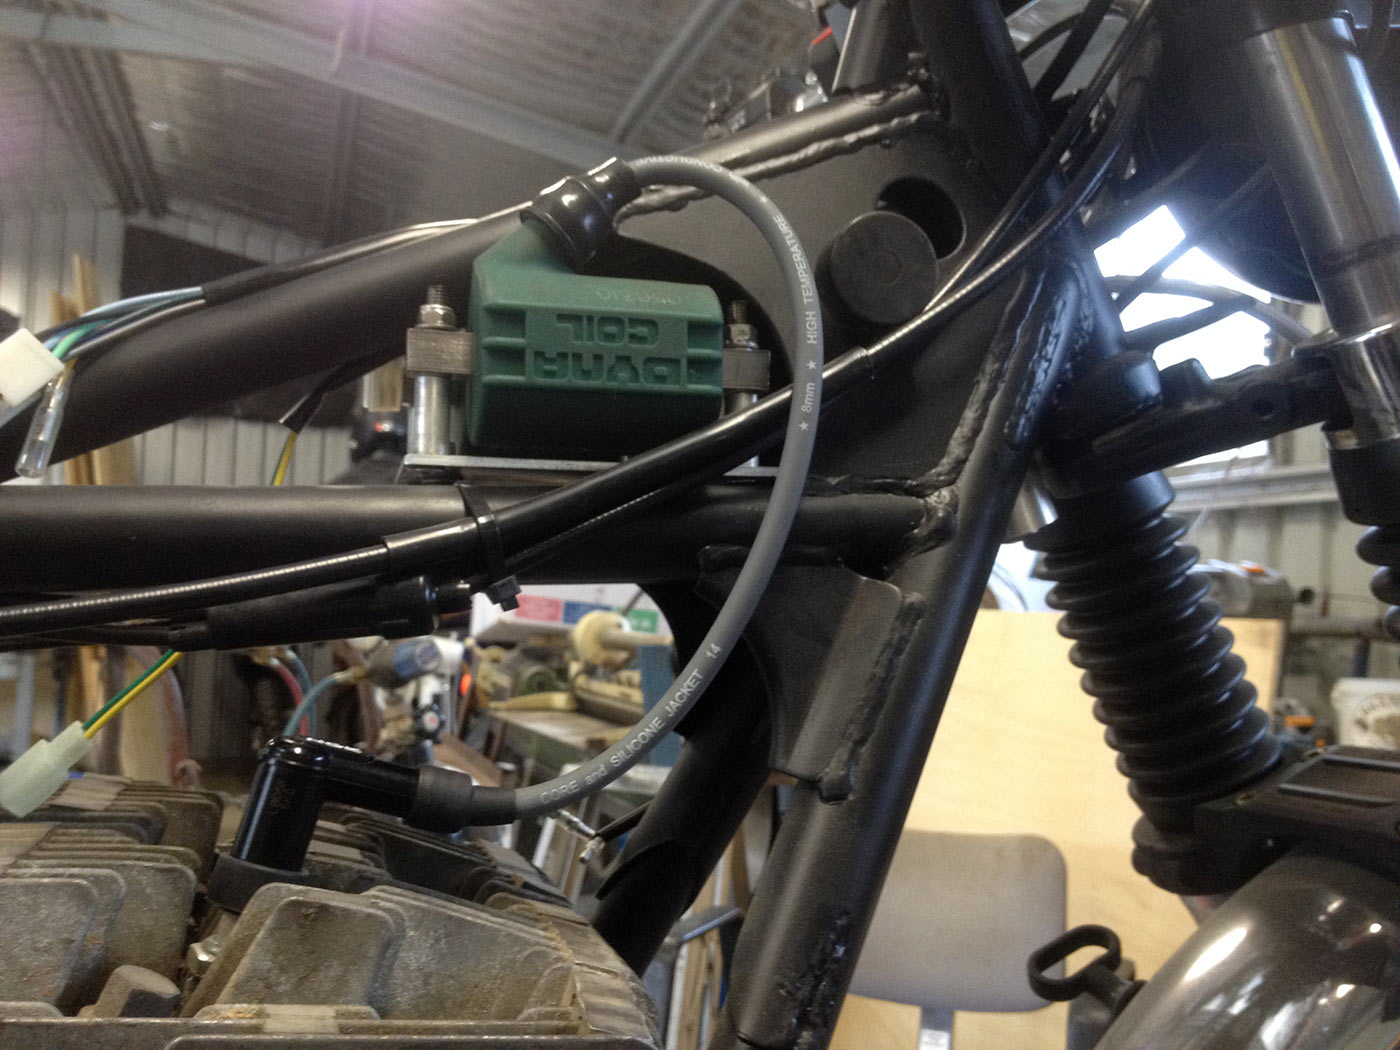 Suzuki Gt250 Electrical Work Tgr Team Ghetto Racing Aprilia Rs250 Wiring Done To The Spark Plugs Leads Just Looks Awesome